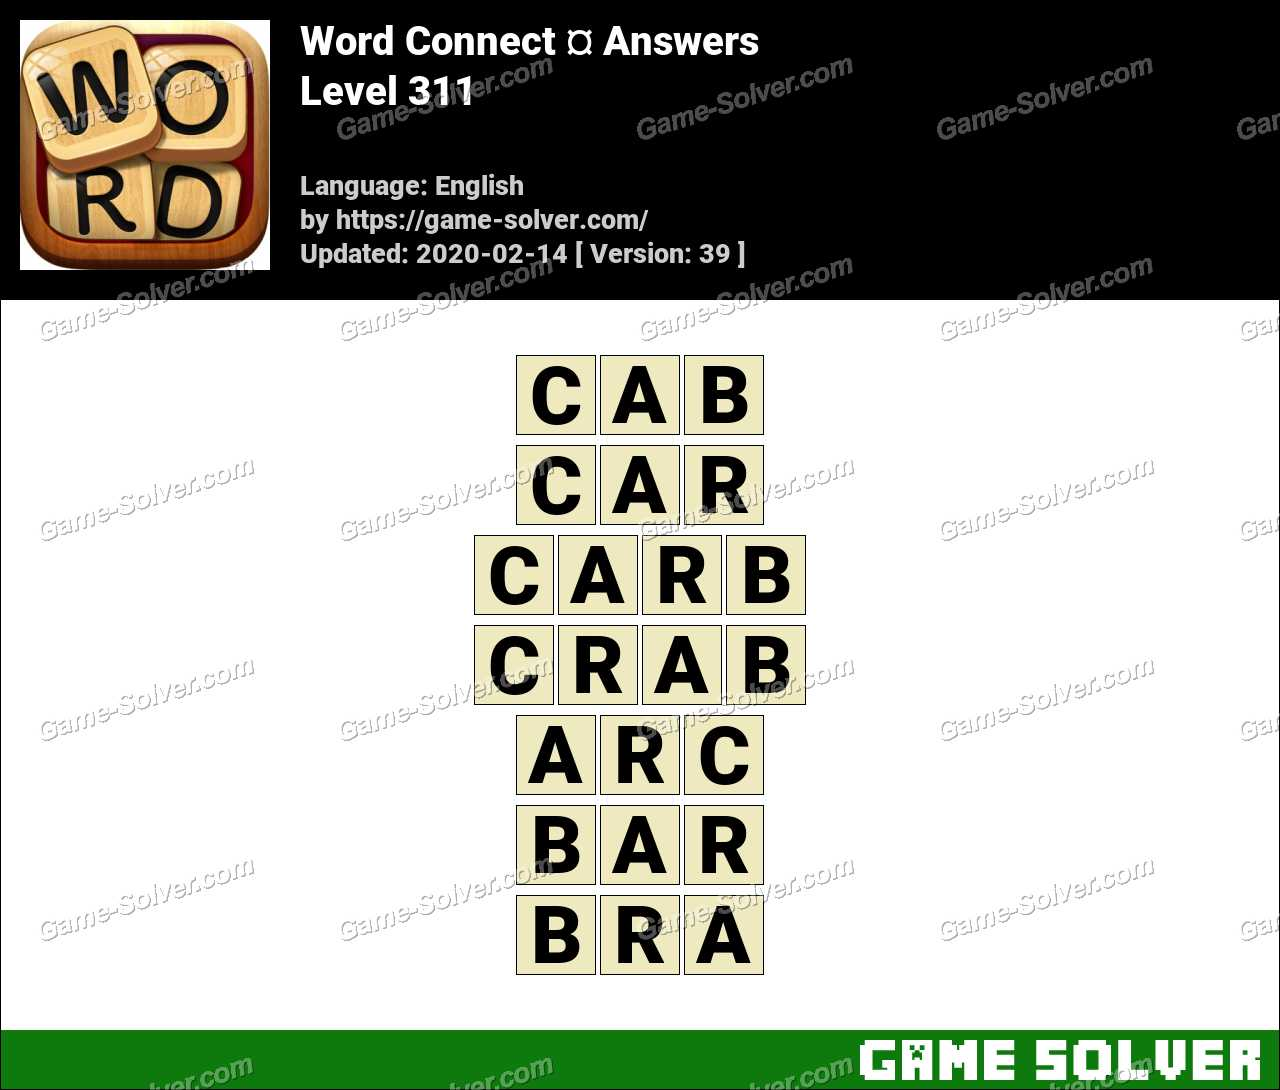 Word Connect Level 311 Answers